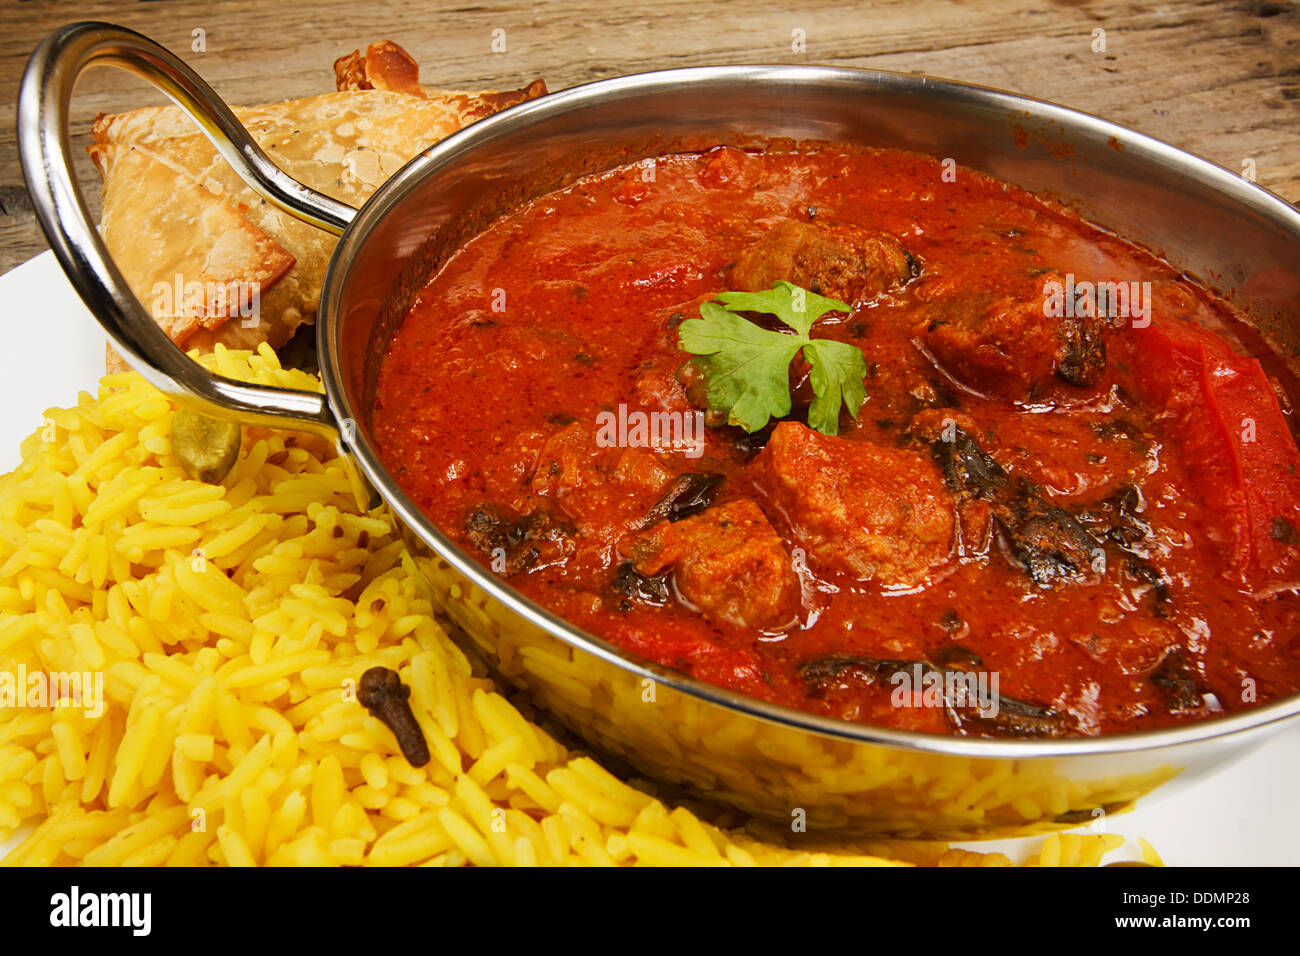 Beef rogan josh an indian dish with tomato and spices a popular curry - Stock Image